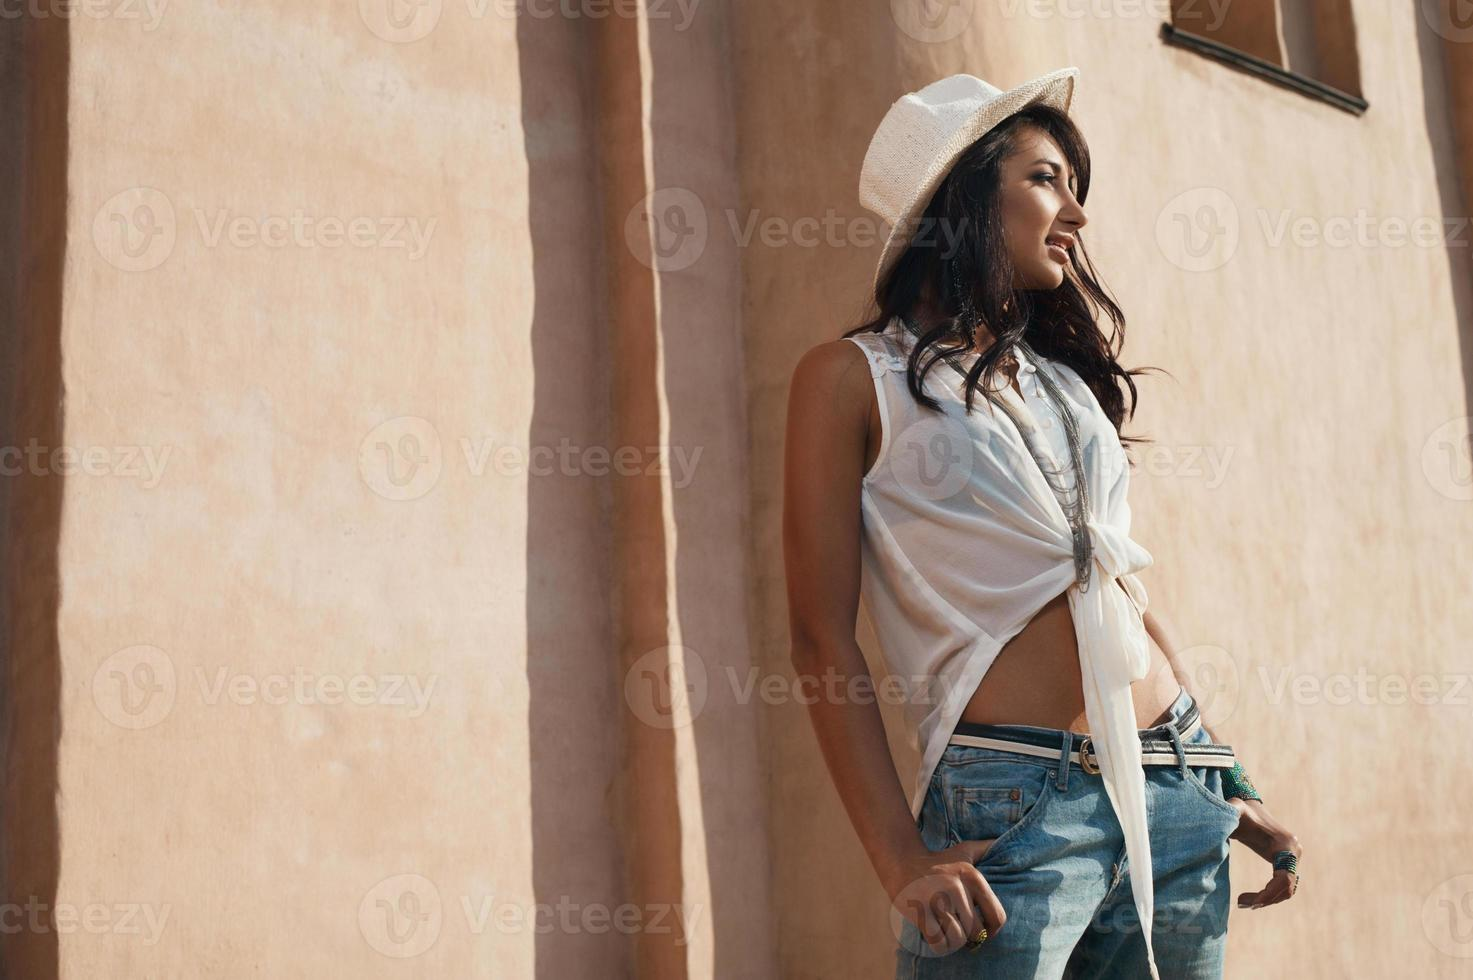 smiling indian lady in casual summer outfit against ancient building photo